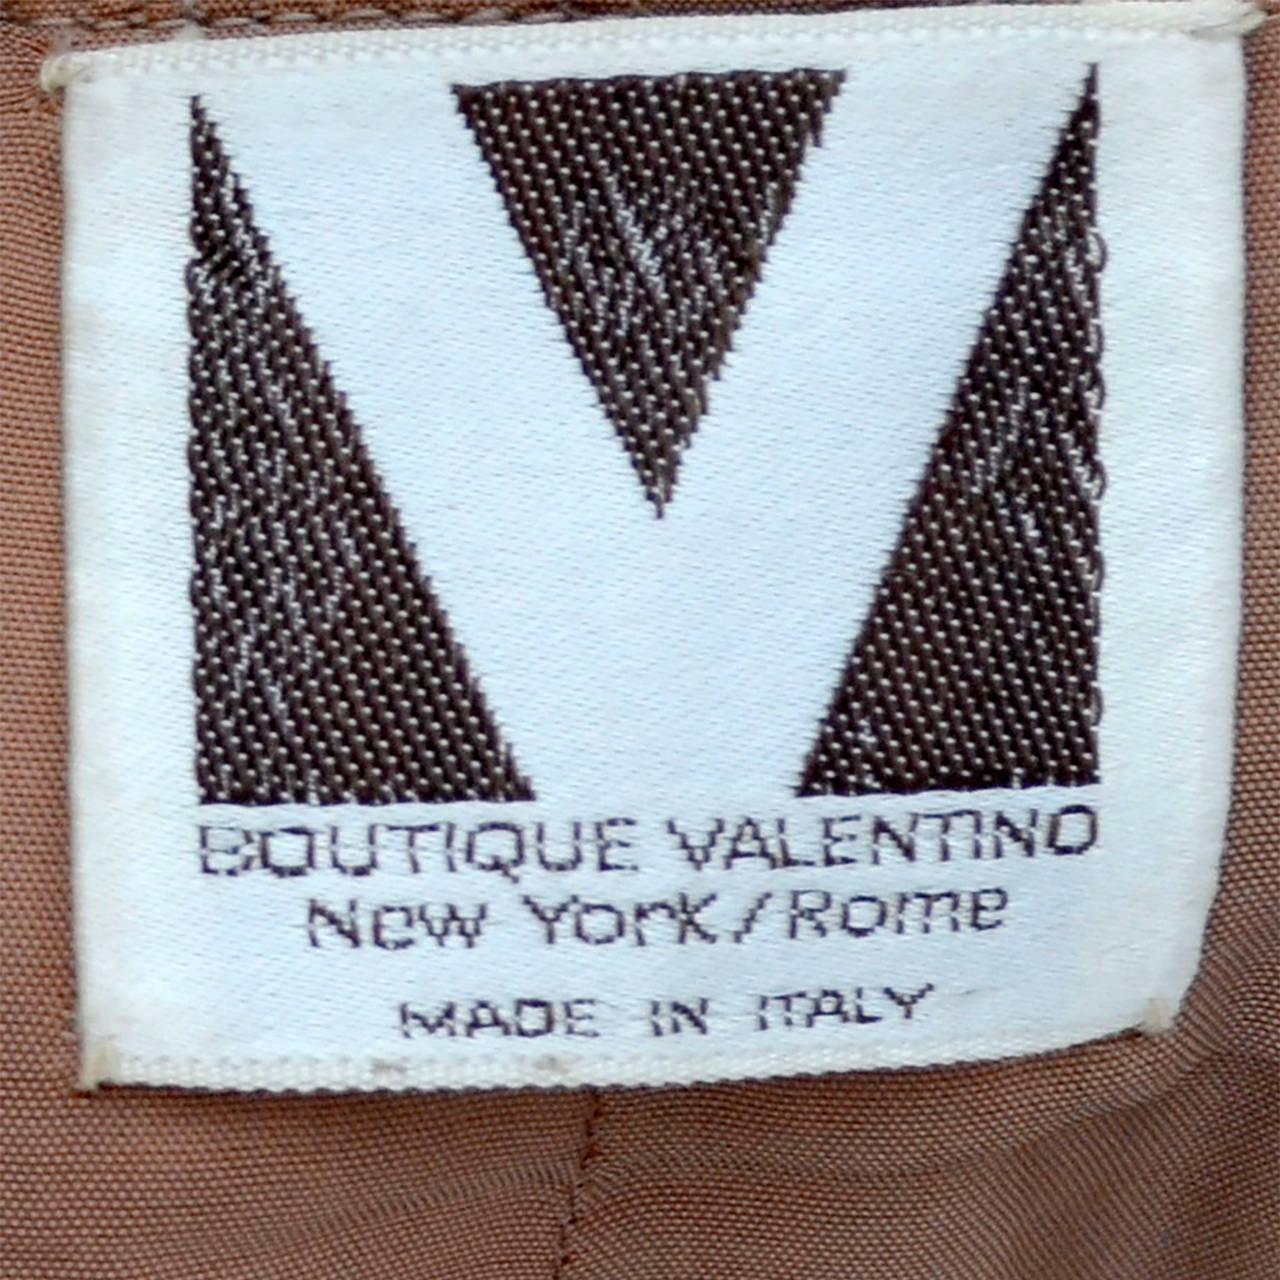 Brown Valentino Vintage Skirt Older Label Boutique Camel Wool 1960s For Sale